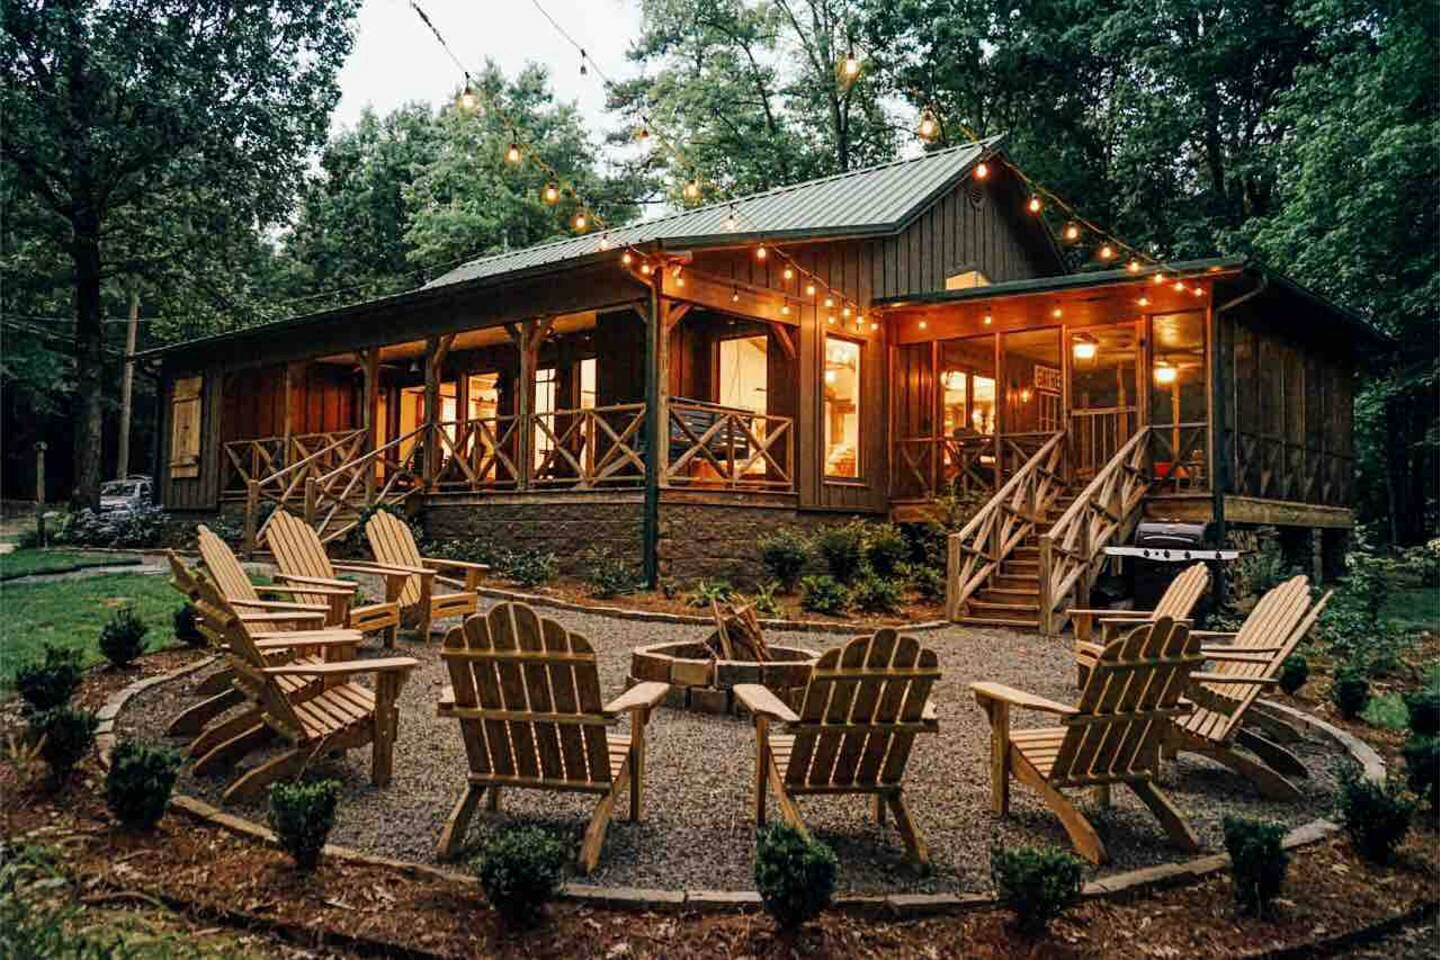 This Mississippi cabin rental is perfect for a group of guests to go glamping